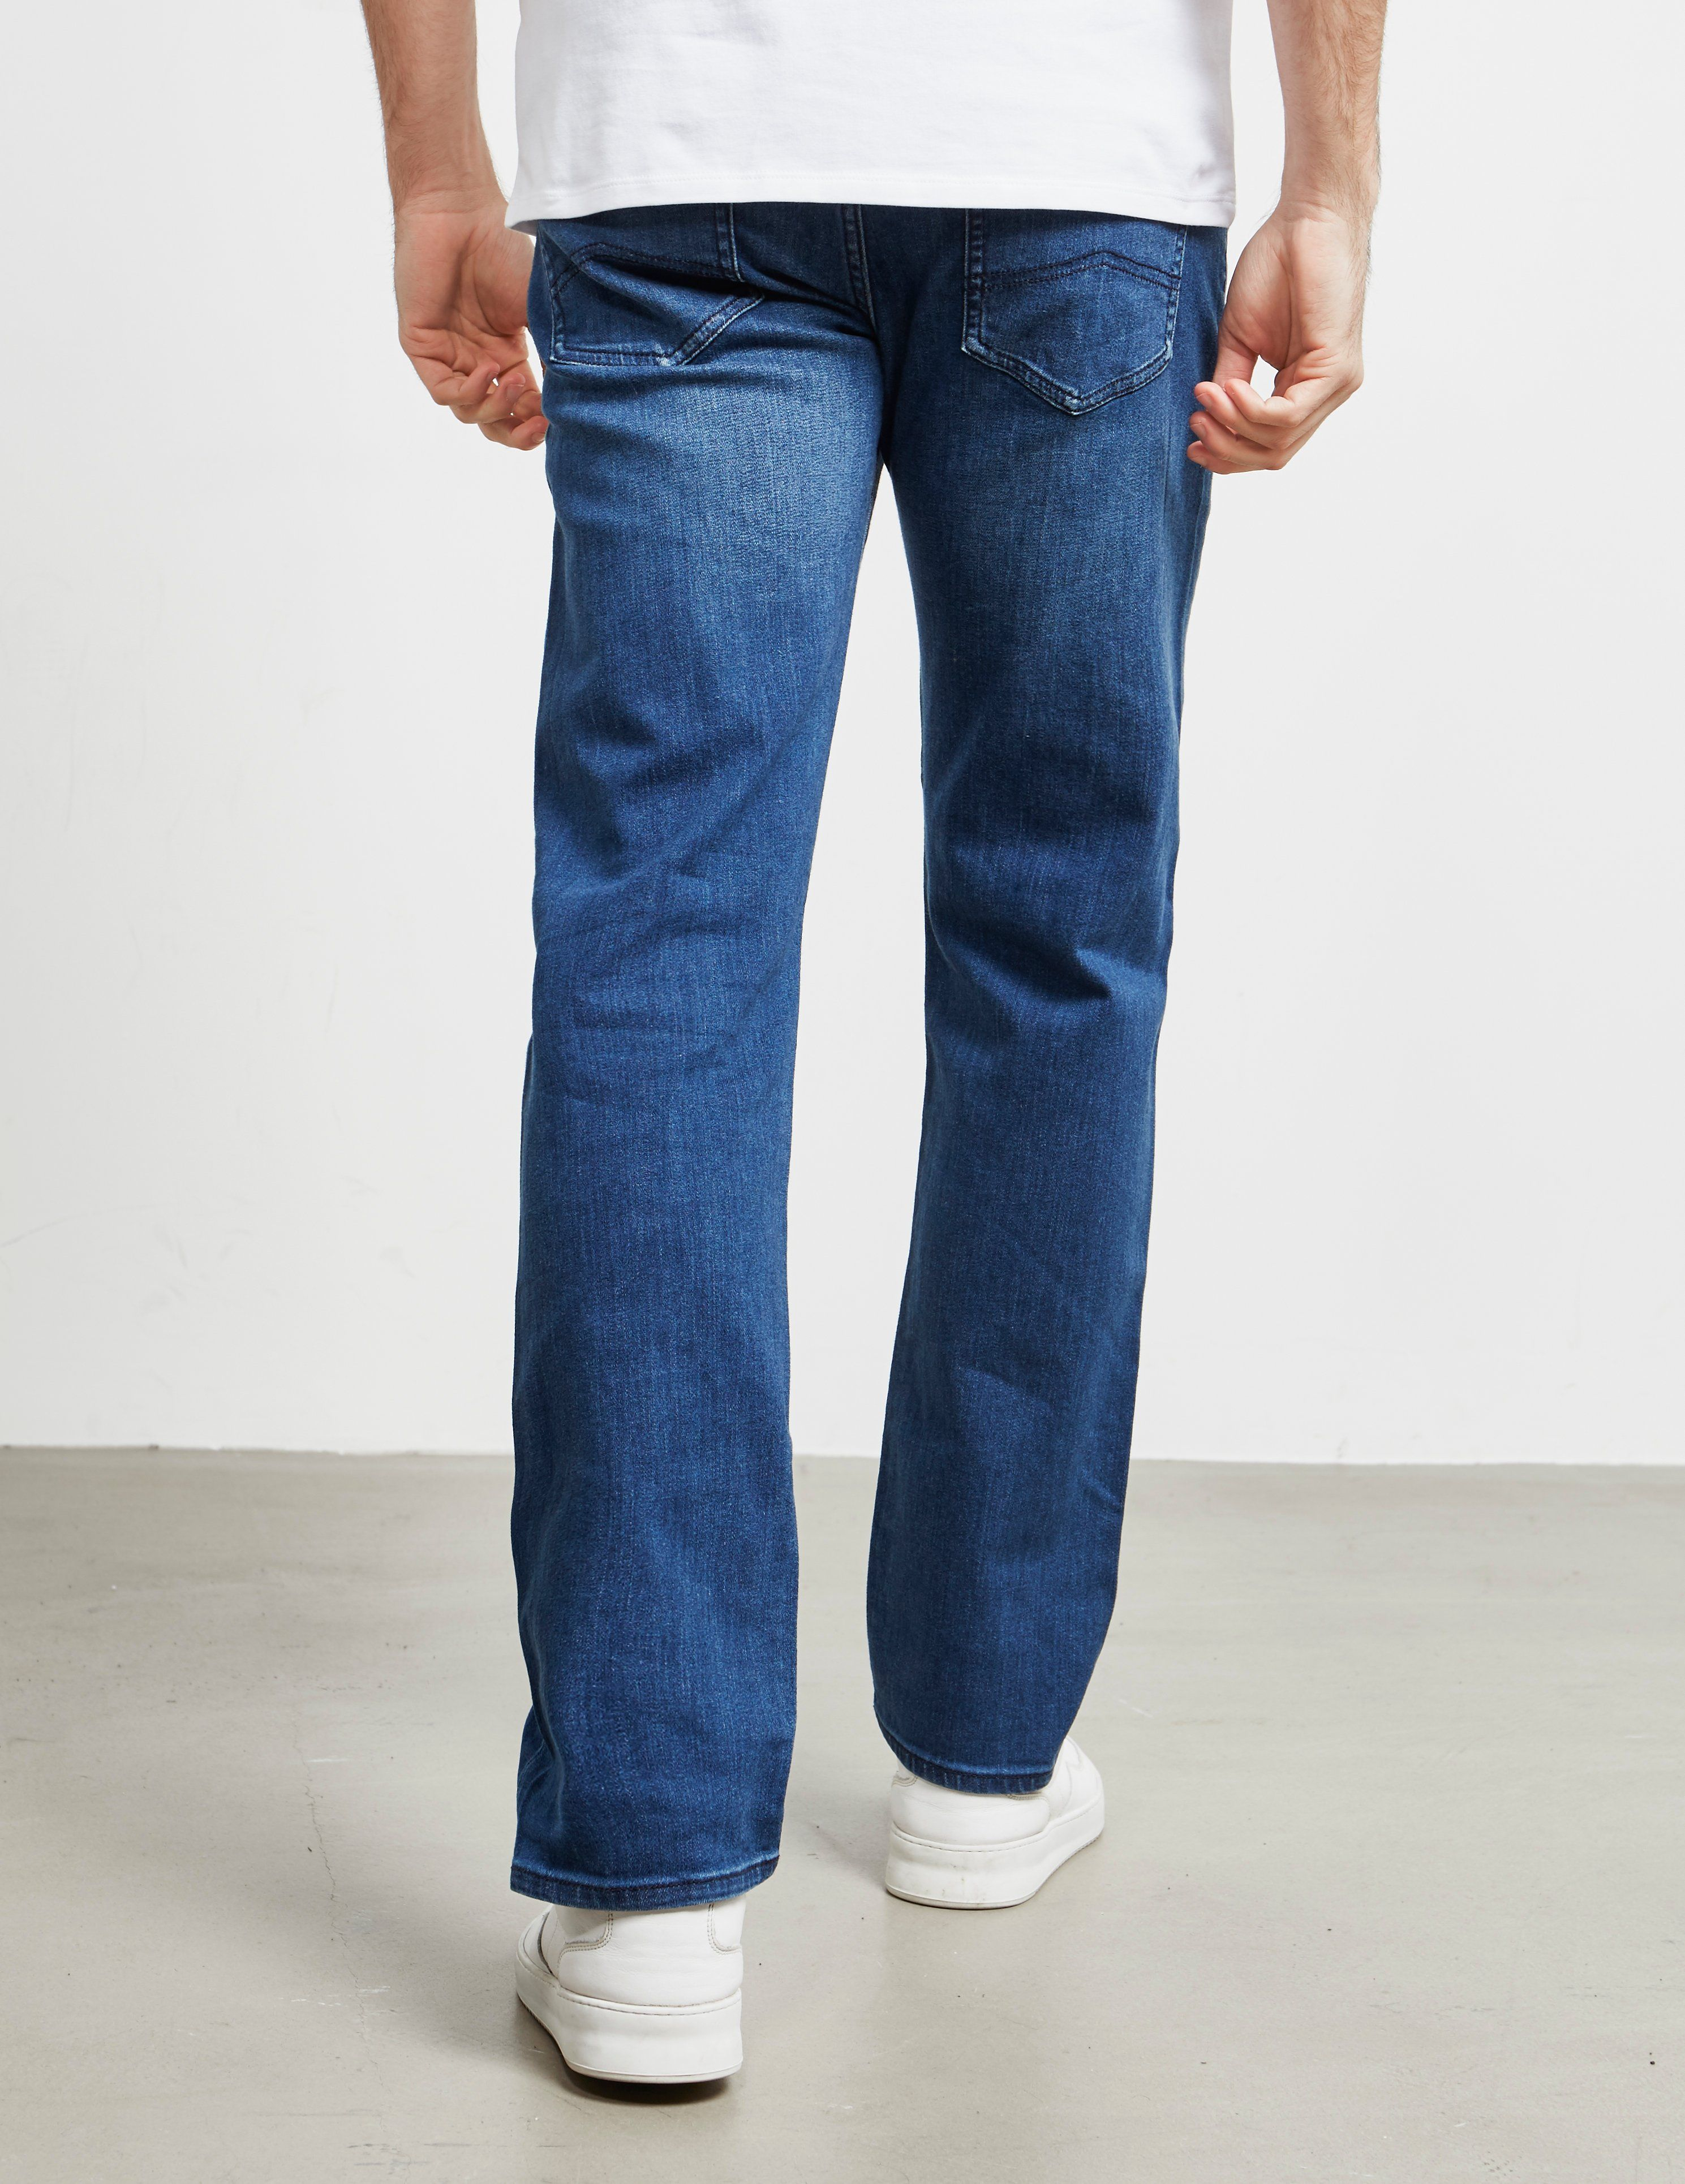 Armani Exchange J16 Regular Jeans - Online Exclusive